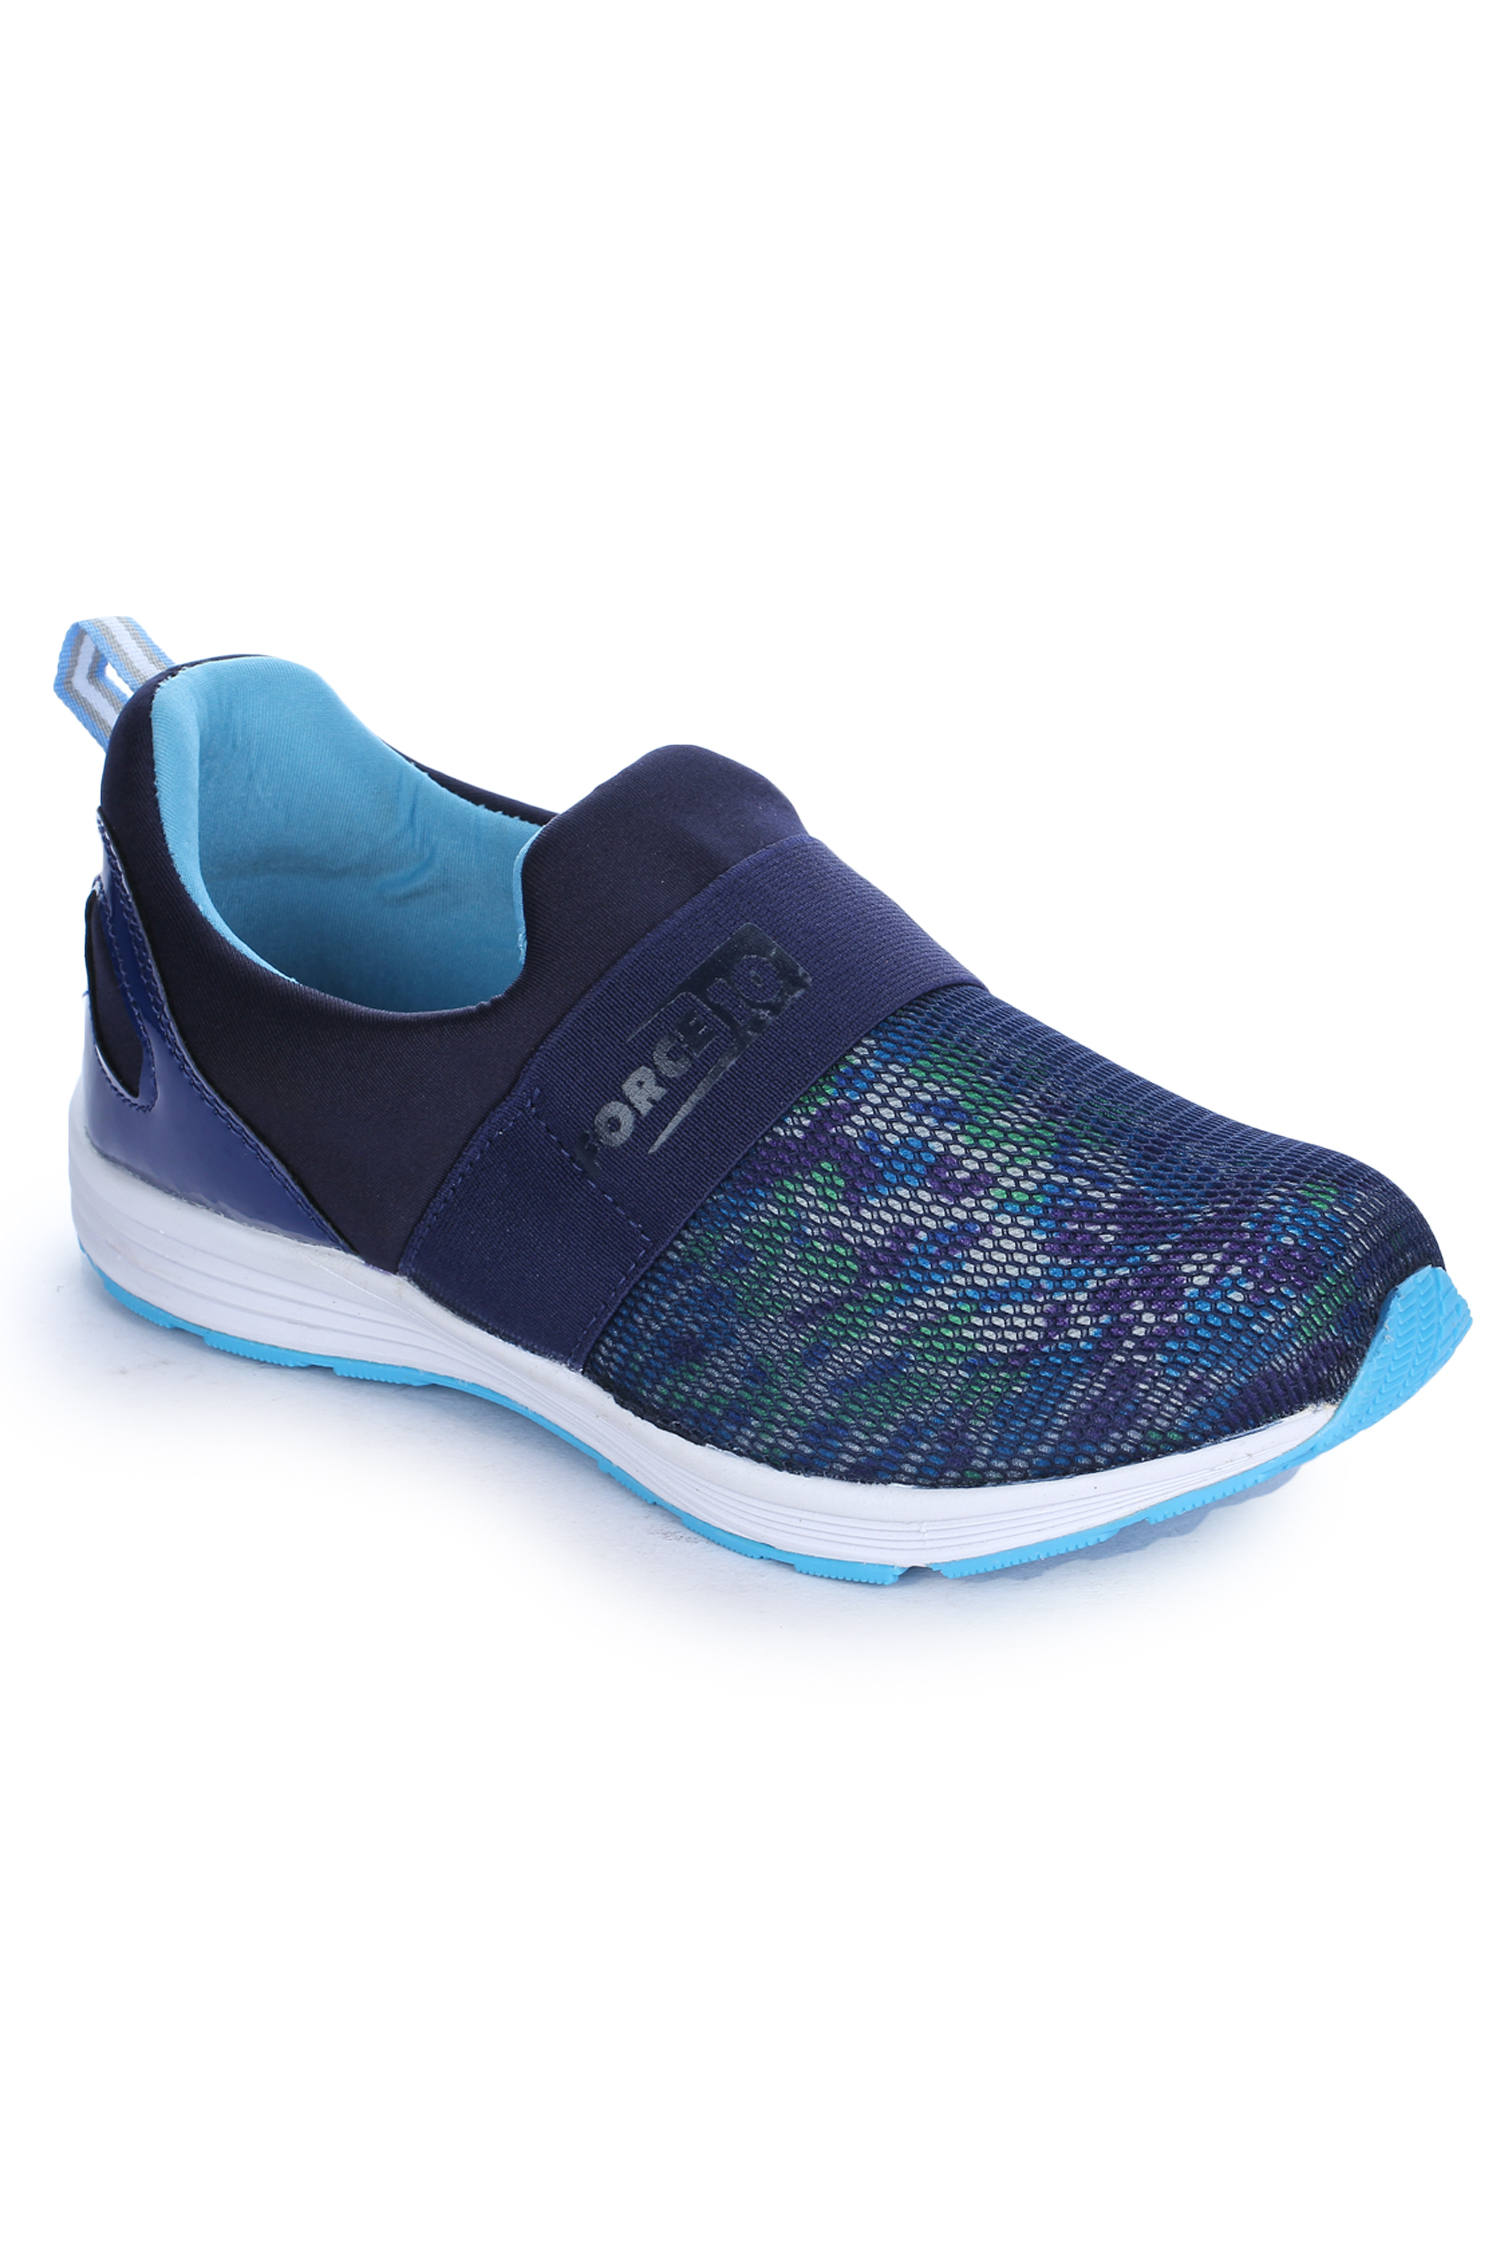 Liberty | Liberty Force 10 Blue Sports Wailking Shoes MARTIE-5N_Blue For - Women